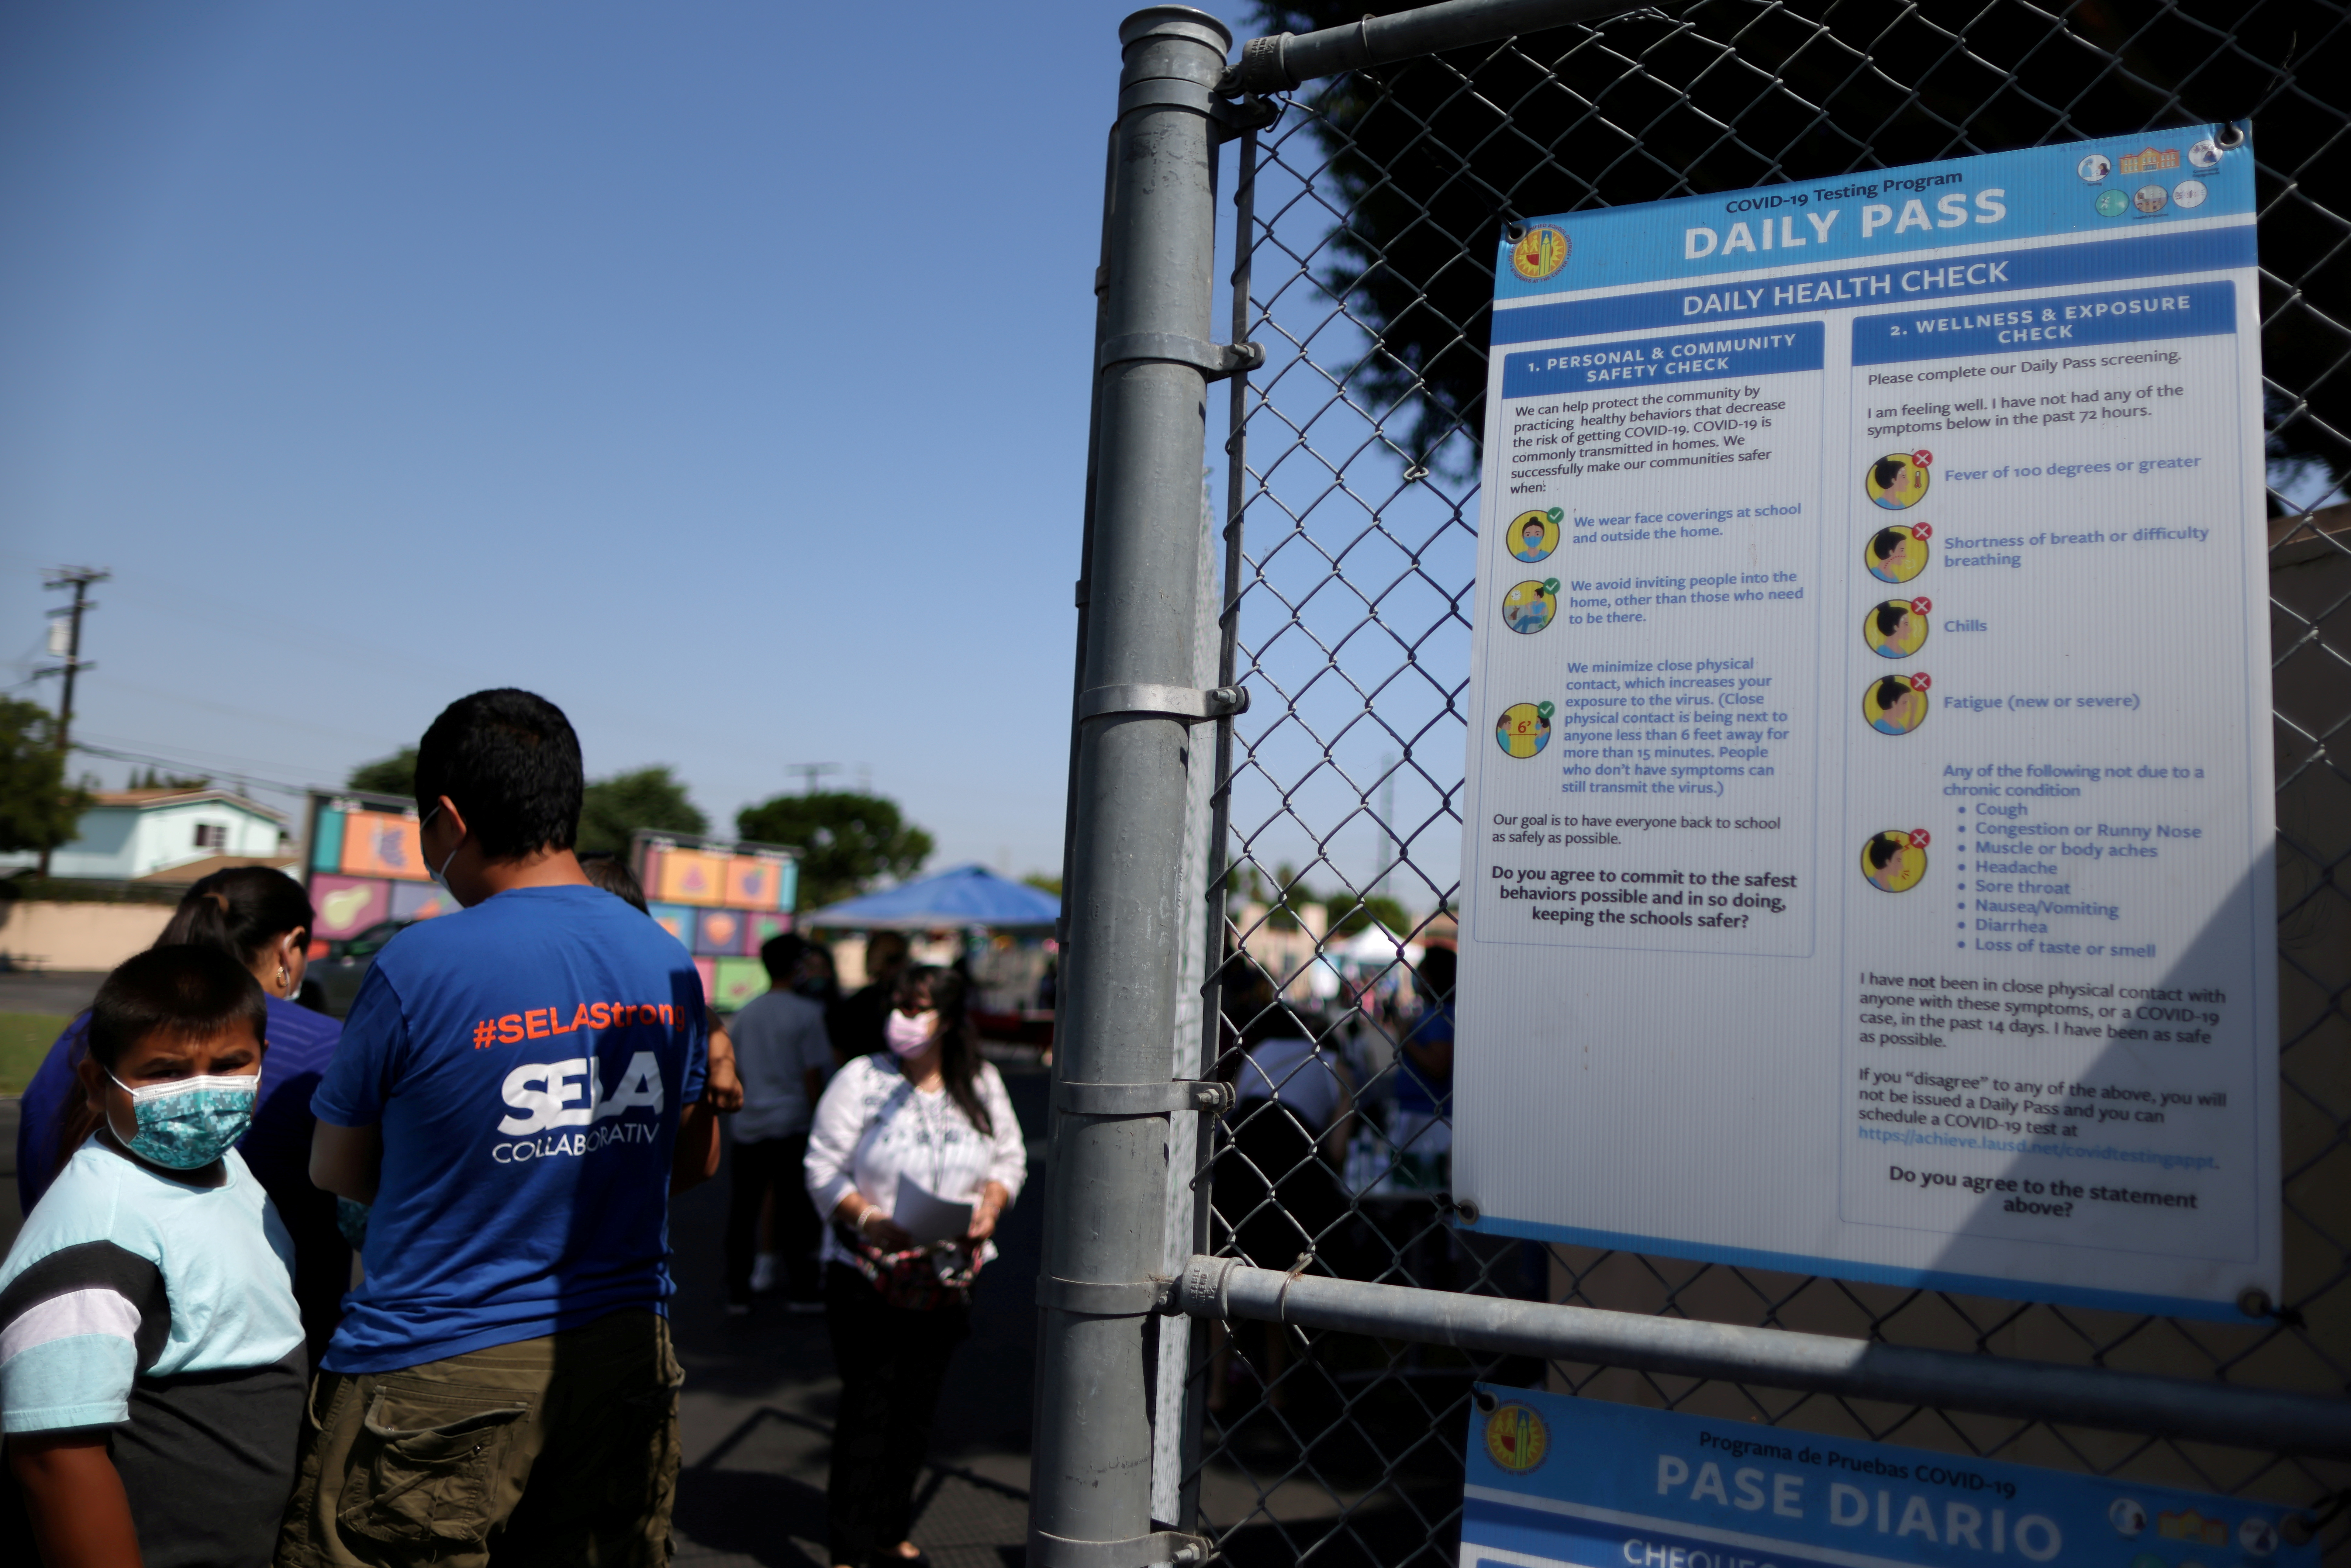 People wait in line at a school for coronavirus disease (COVID-19) testing and vaccines in South Gate, Los Angeles, California, U.S., August 12, 2021. REUTERS/Lucy Nicholson/File Photo